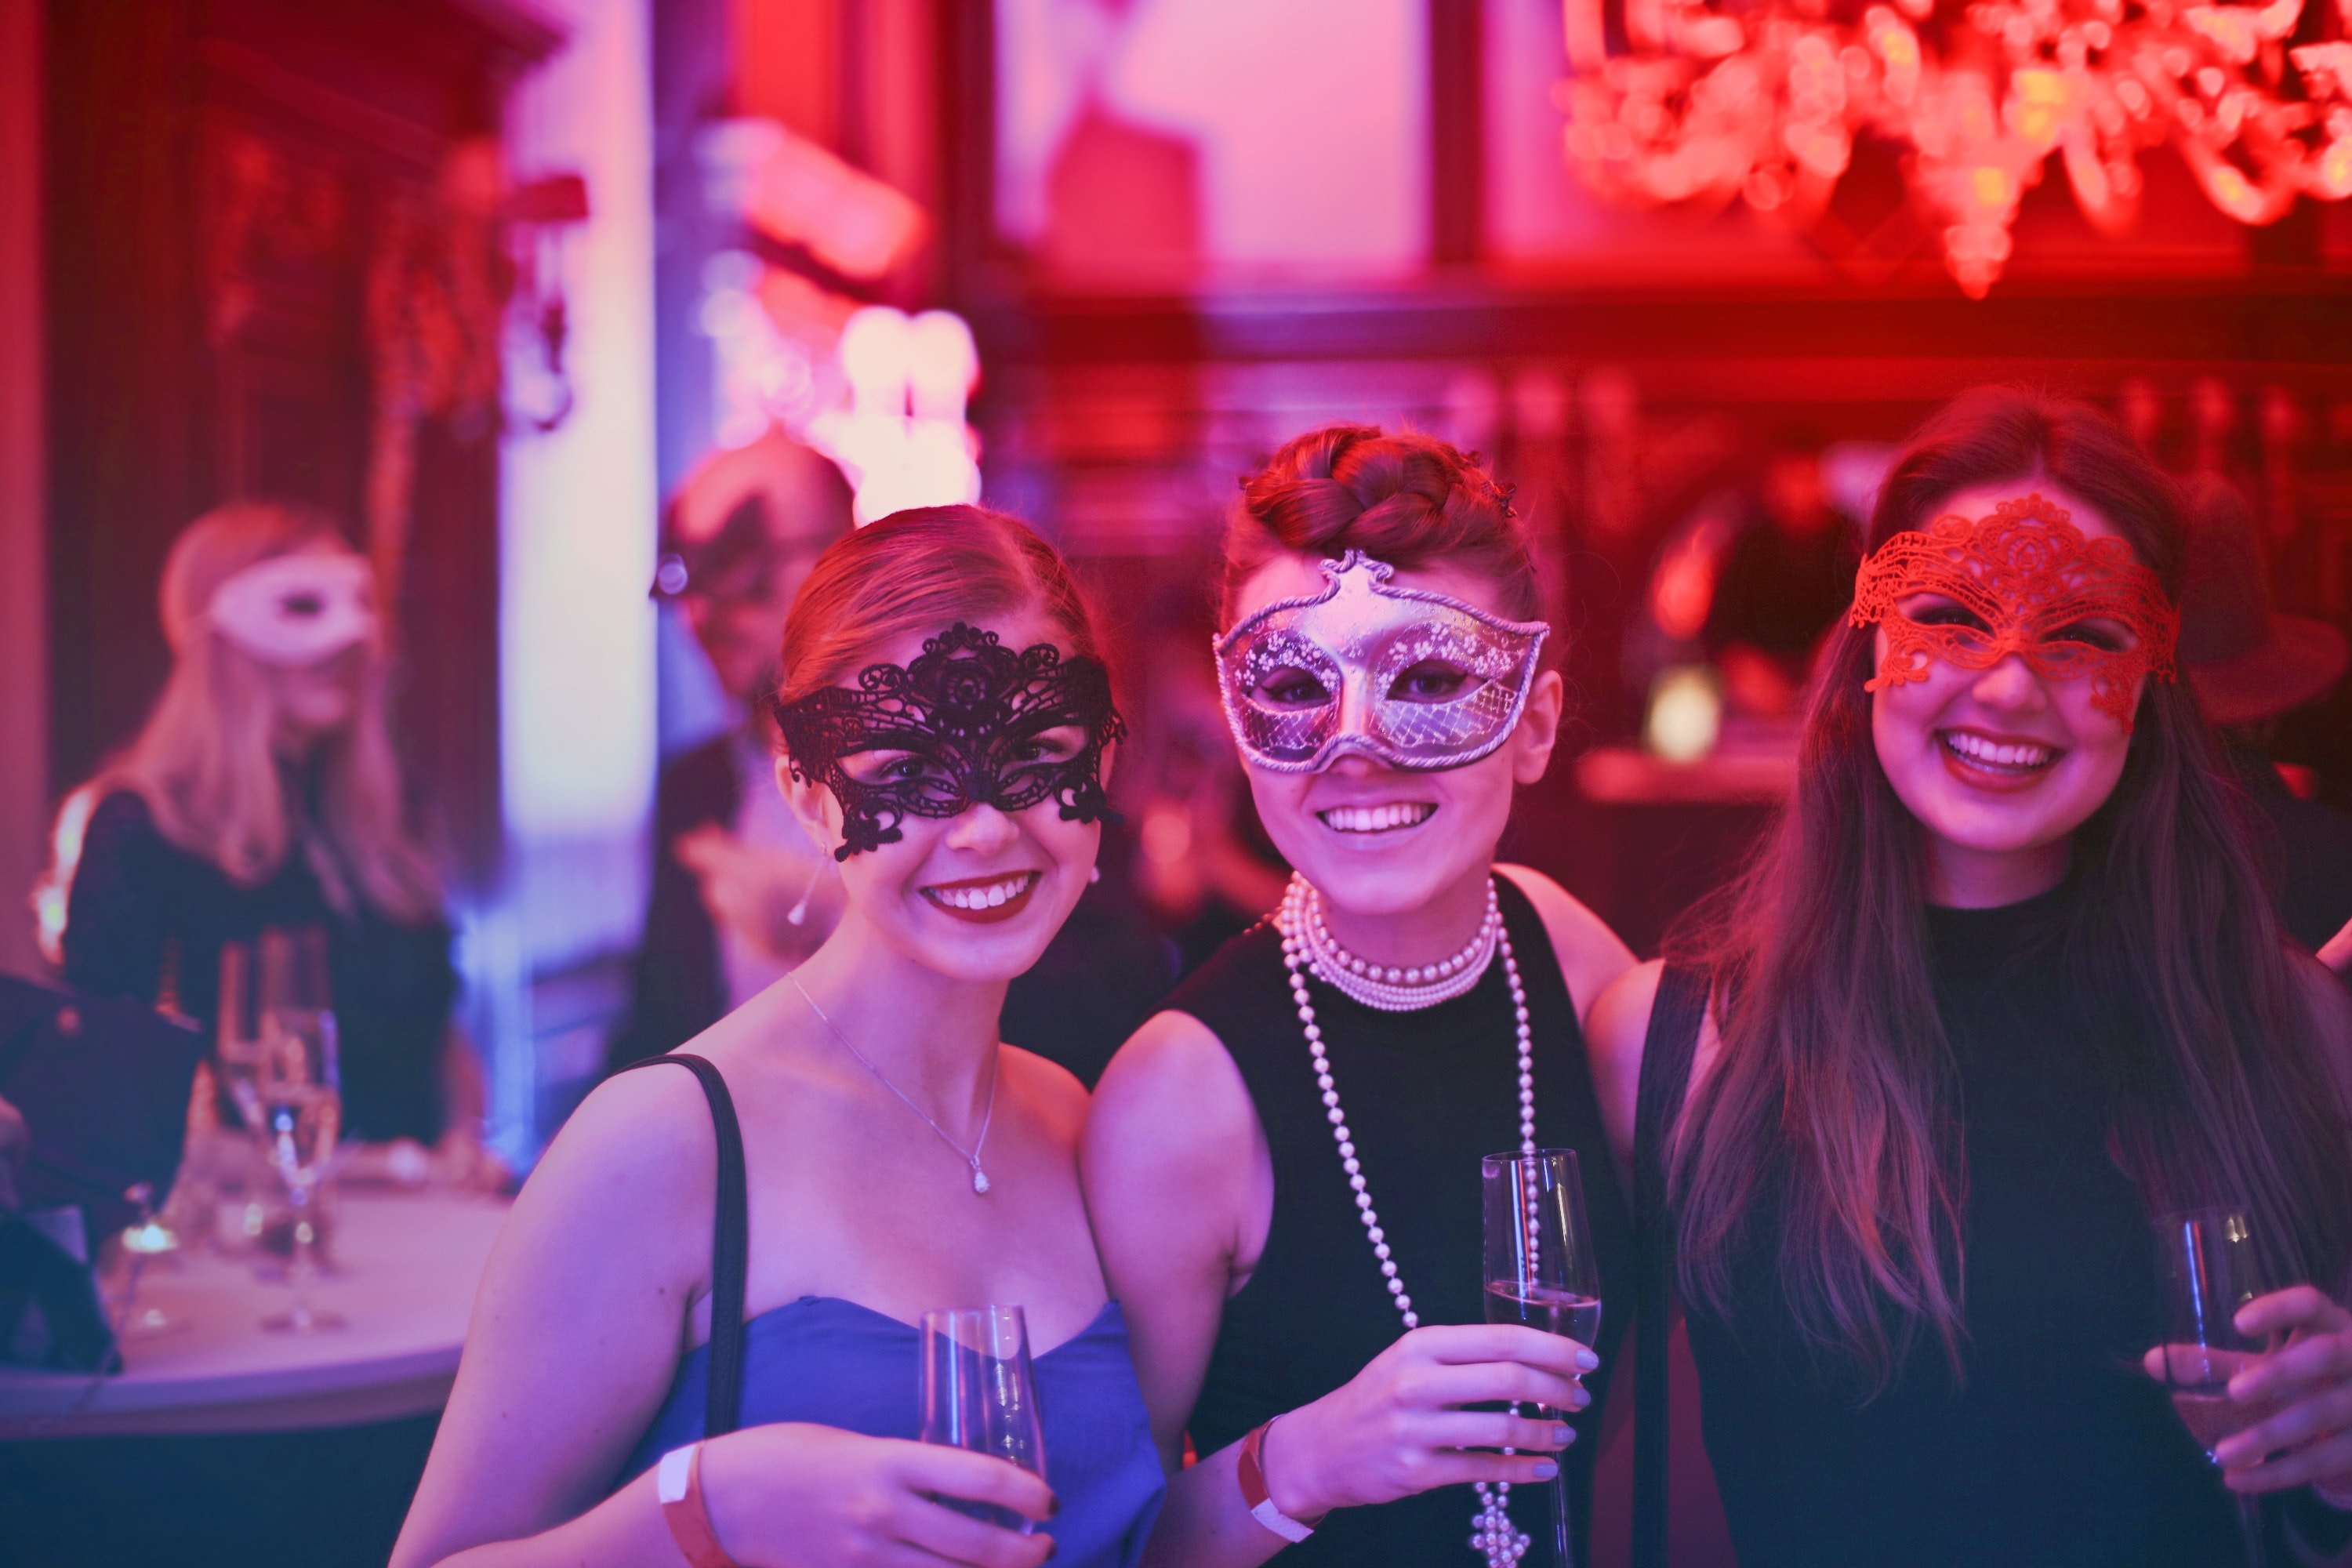 Group of women at masked ball